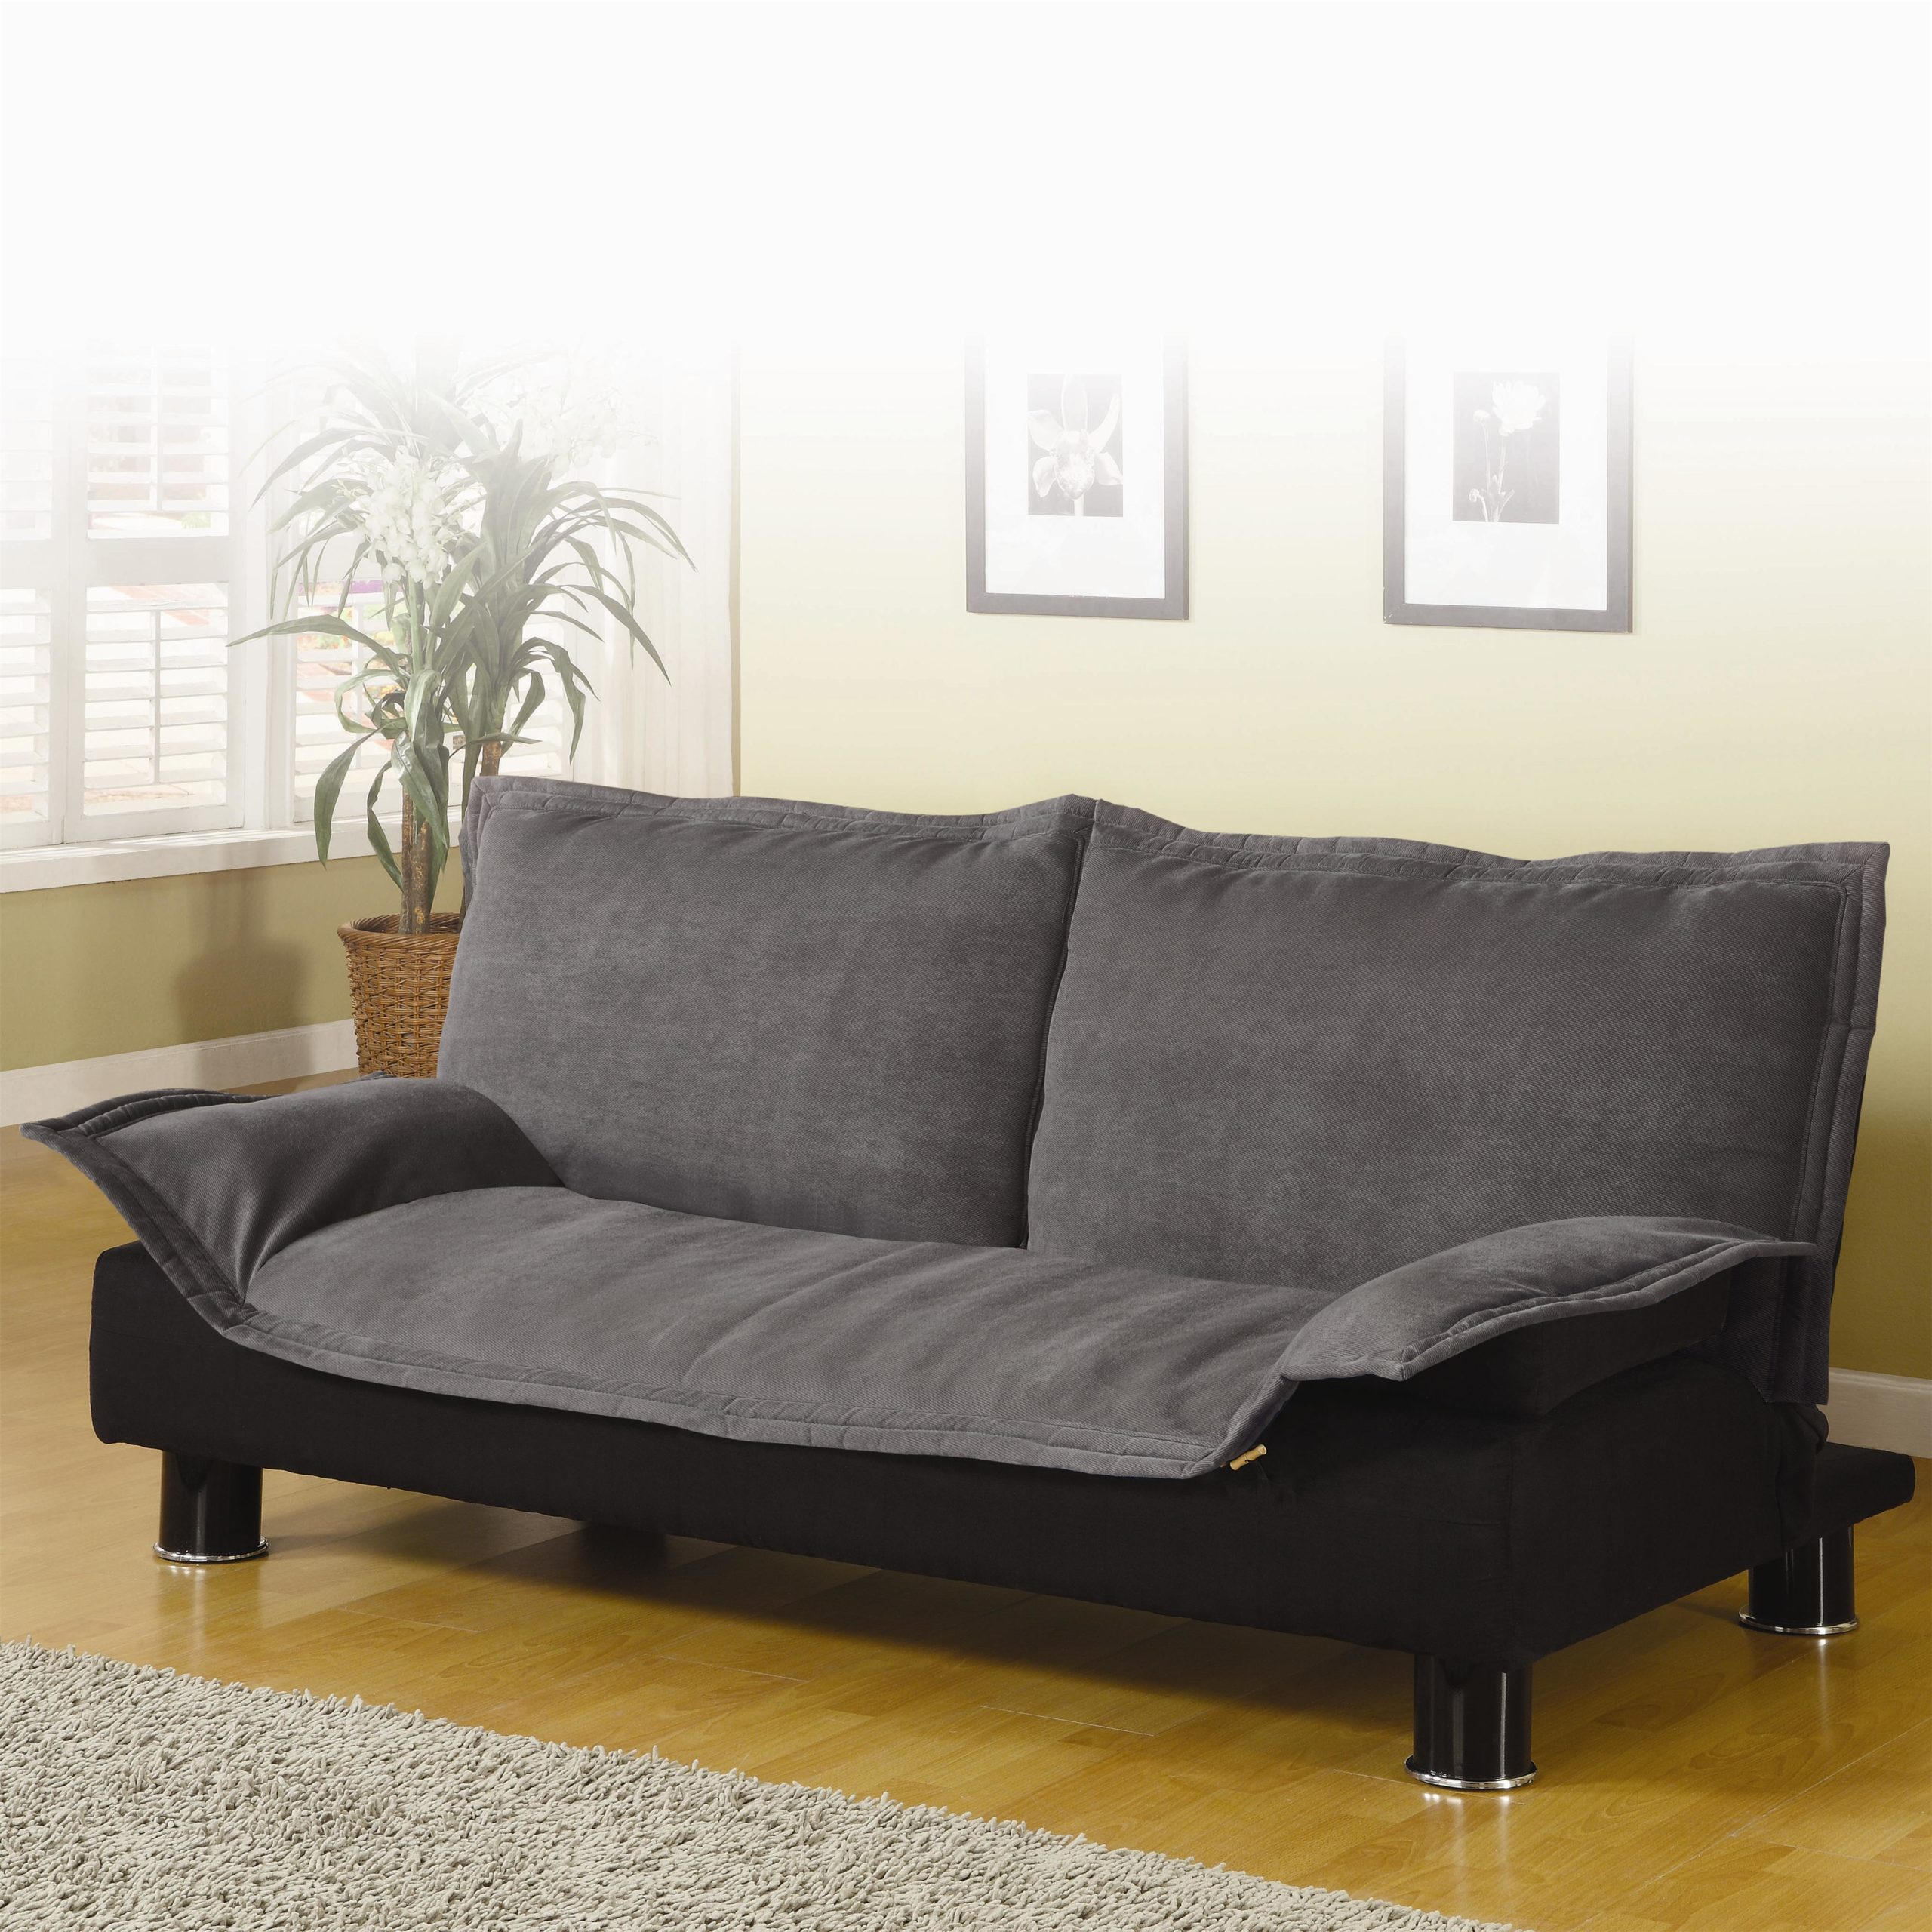 Grey Casual Convertible Sofa Bed in up position